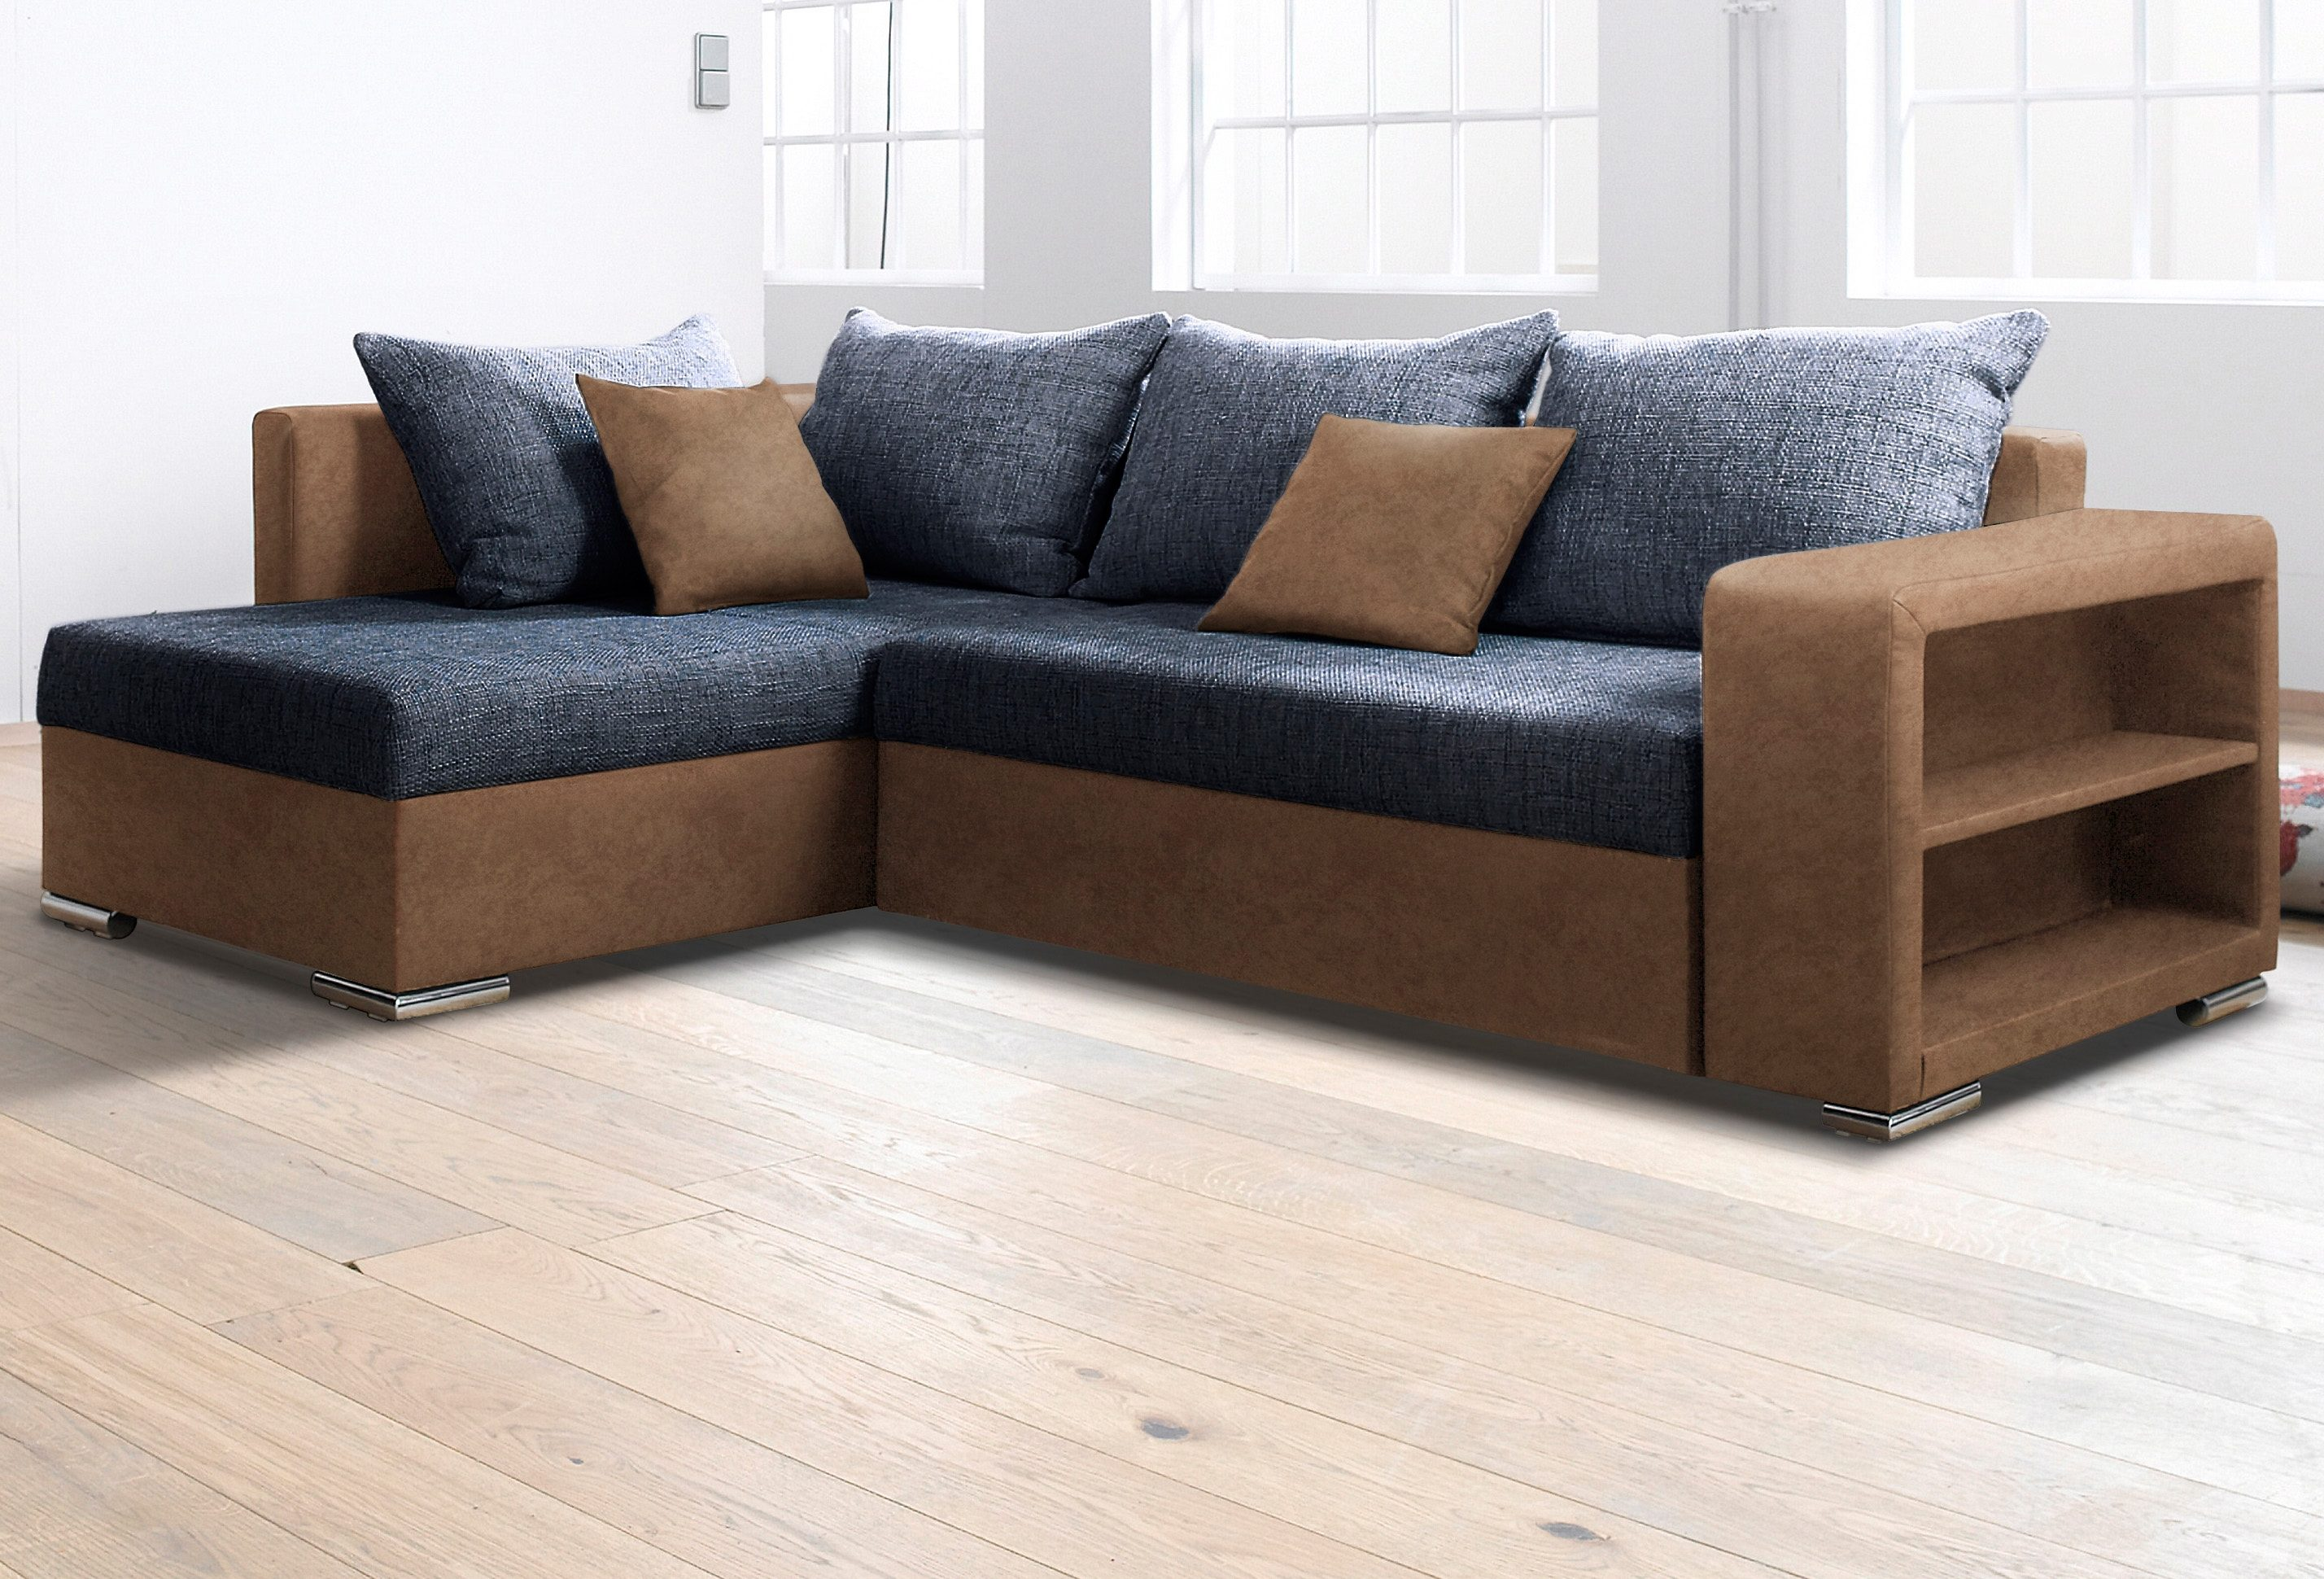 COLLECTION AB Ecksofa | Wohnzimmer > Sofas & Couches > Ecksofas & Eckcouches | Braun | Holzwerkstoff | COLLECTION AB